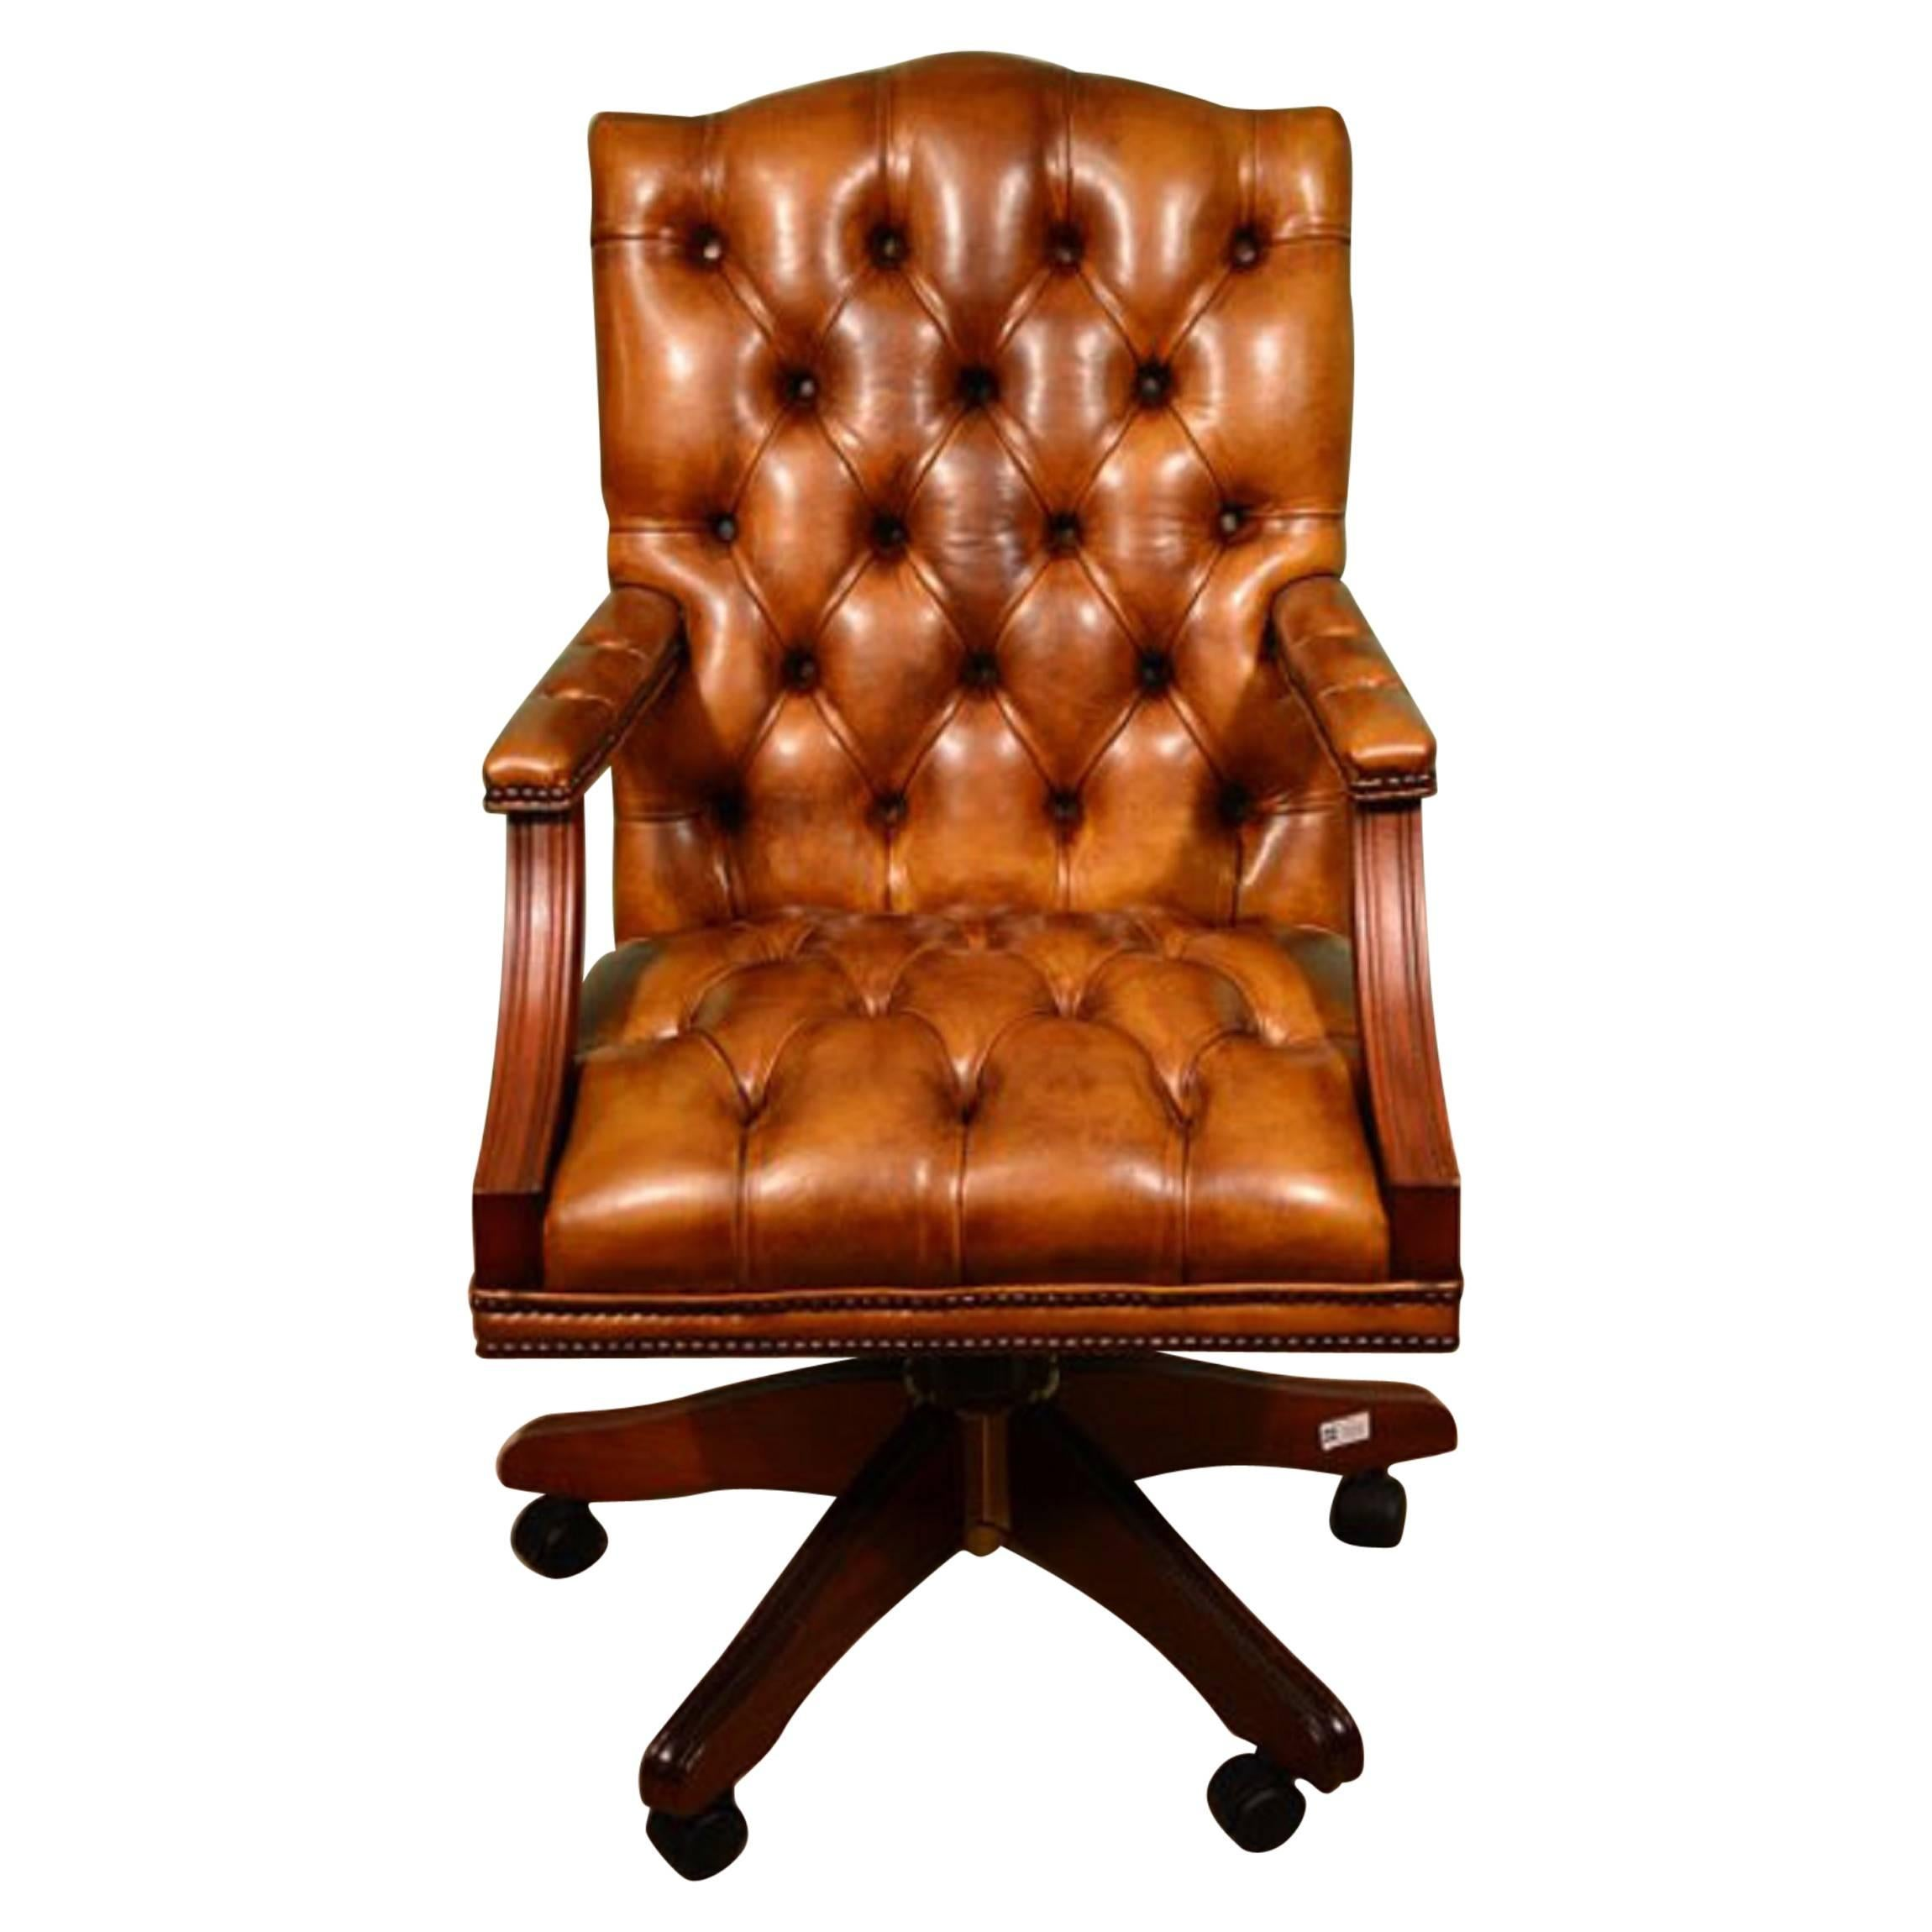 Superieur Bespoke English Handmade Gainsborough Leather Desk Chair Tan